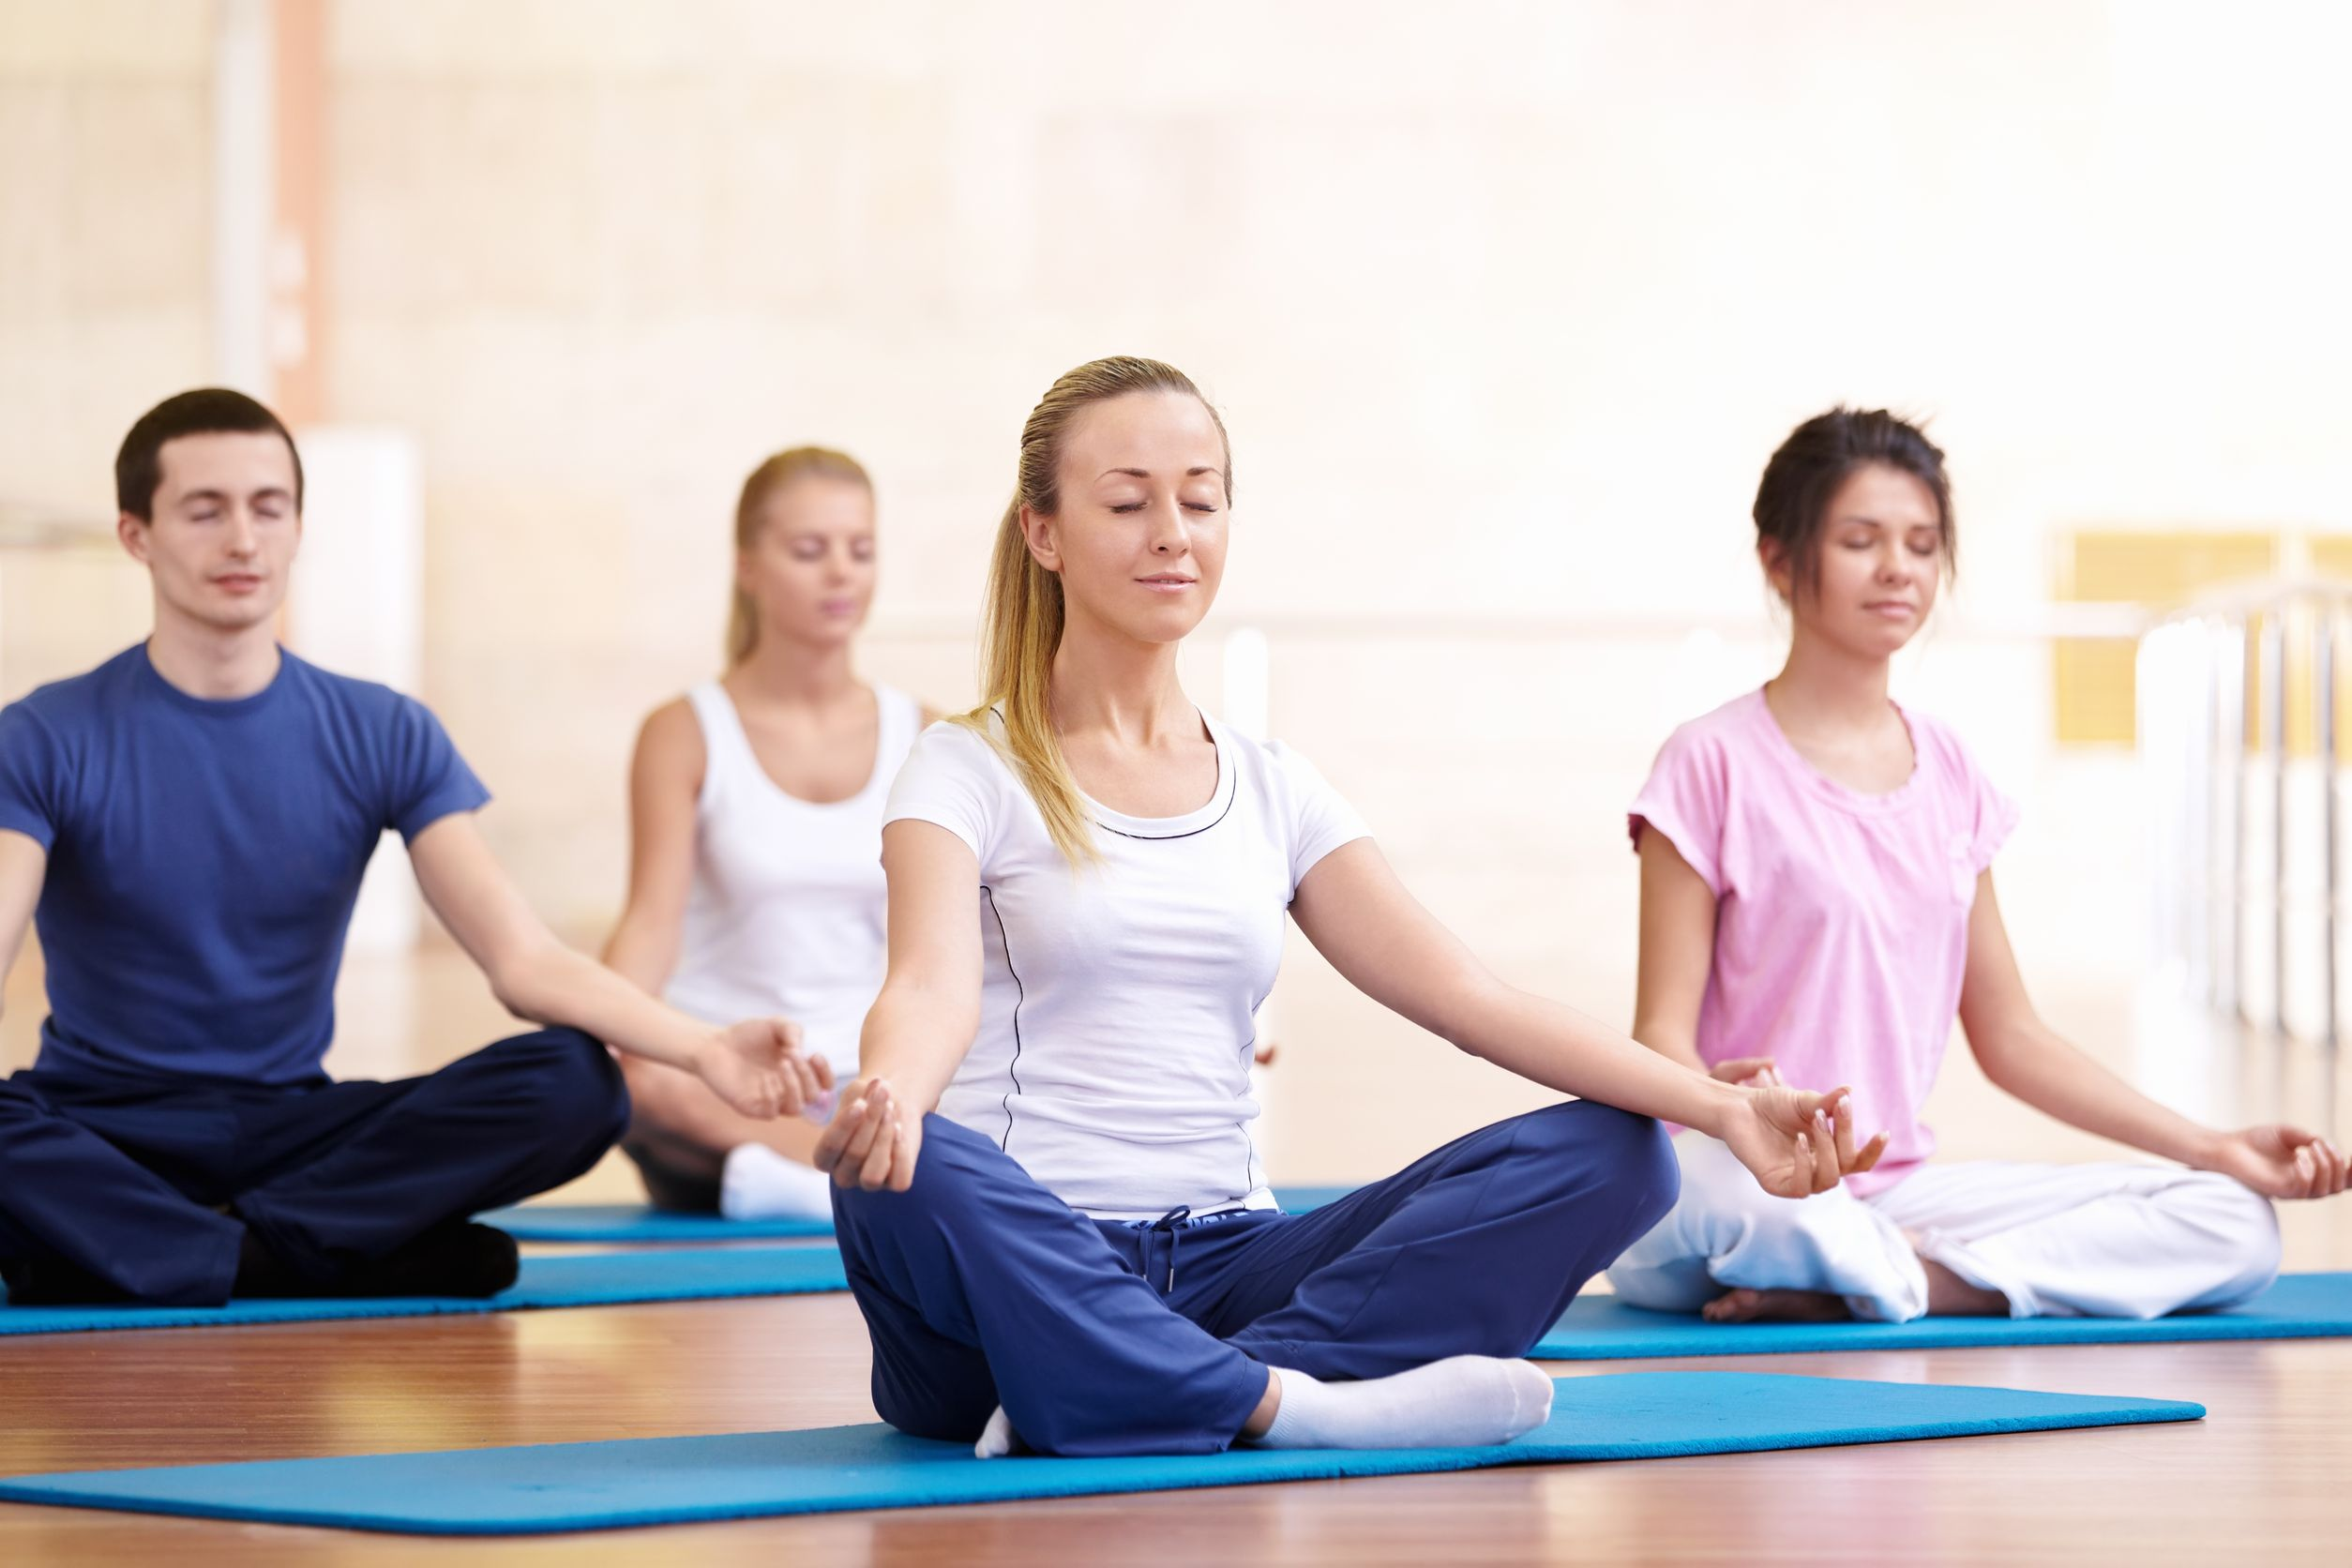 What Are the Benefits of Teaching Yoga Classes to Young Children?